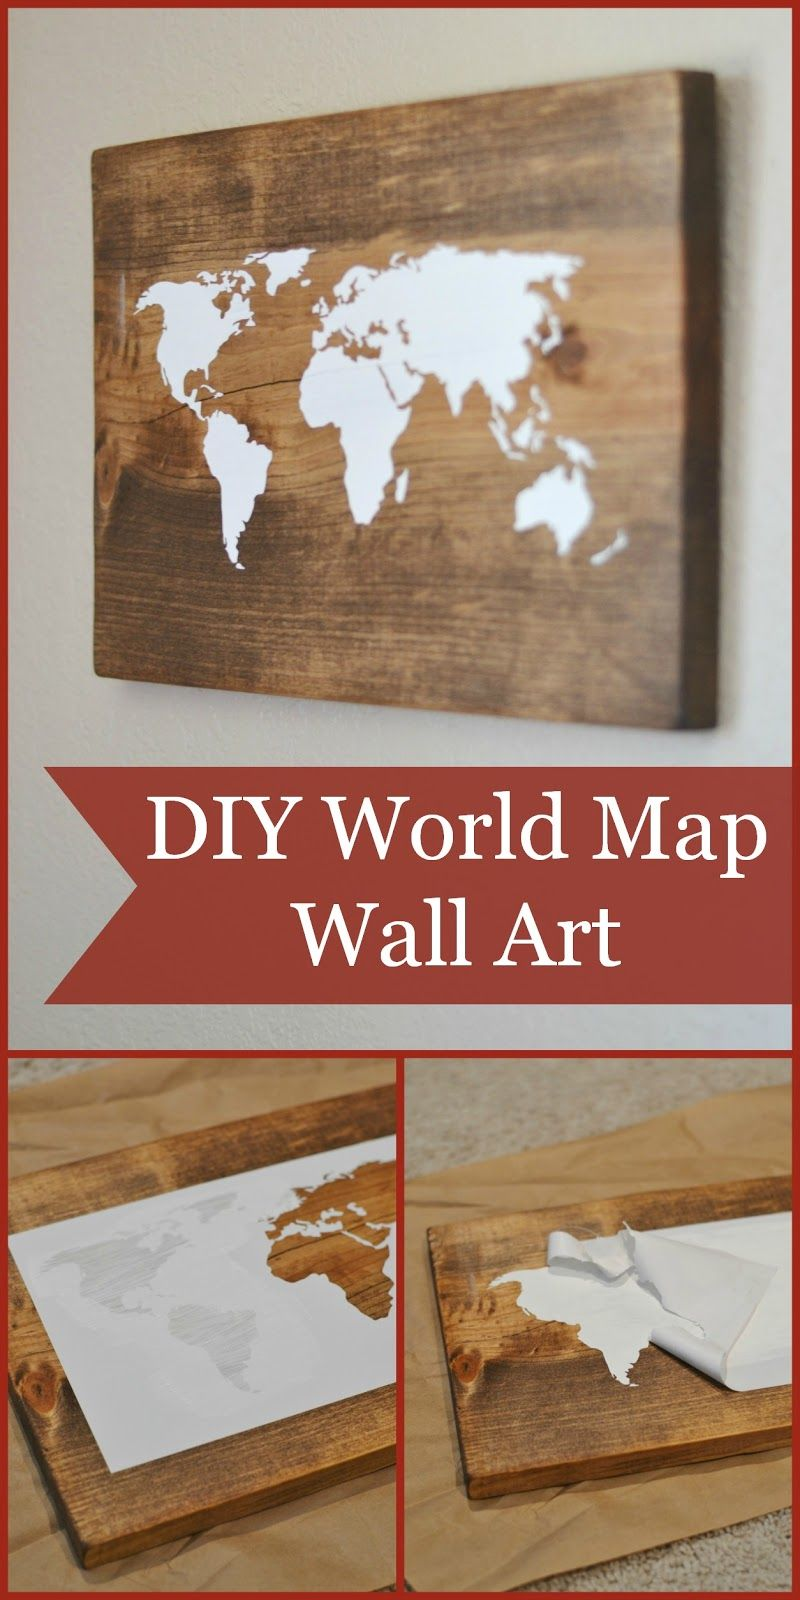 DIY World Map Wall Art Tutorial Using The Silhouette Cameo Could - How to make vinyl wall decals with silhouette cameo